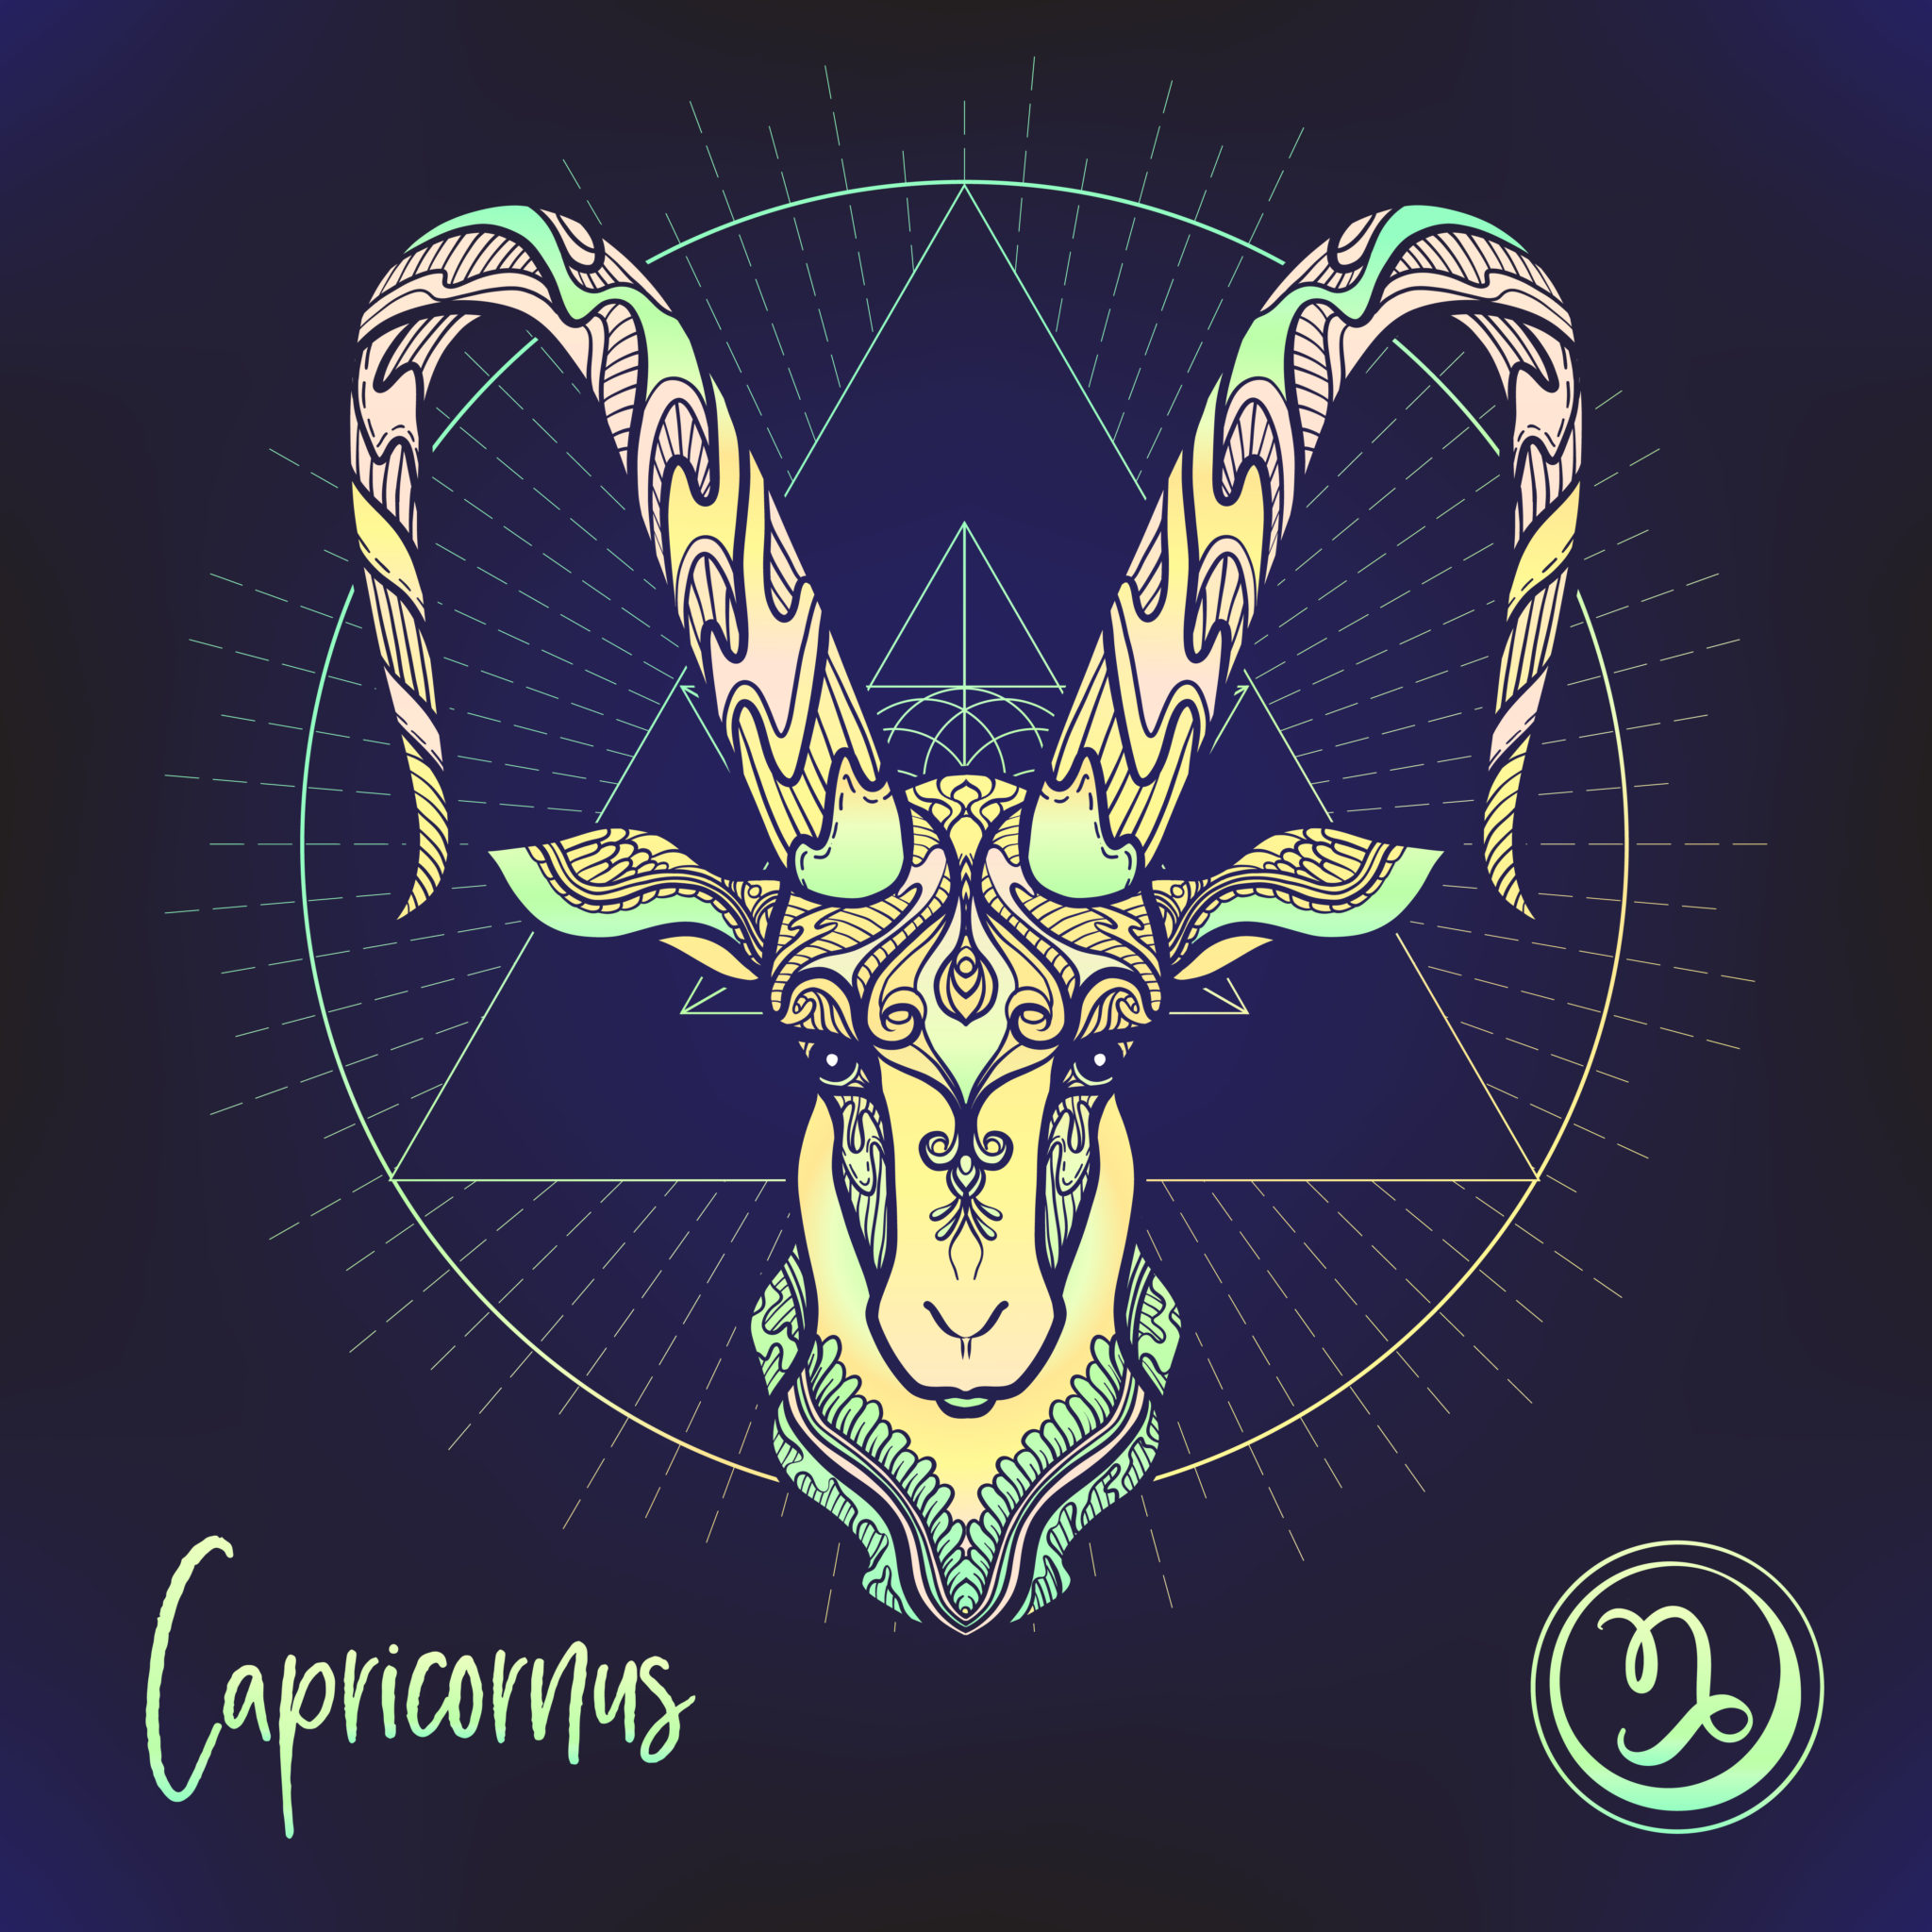 12 Reasons Capricorn is the Worst Zodiac Sign